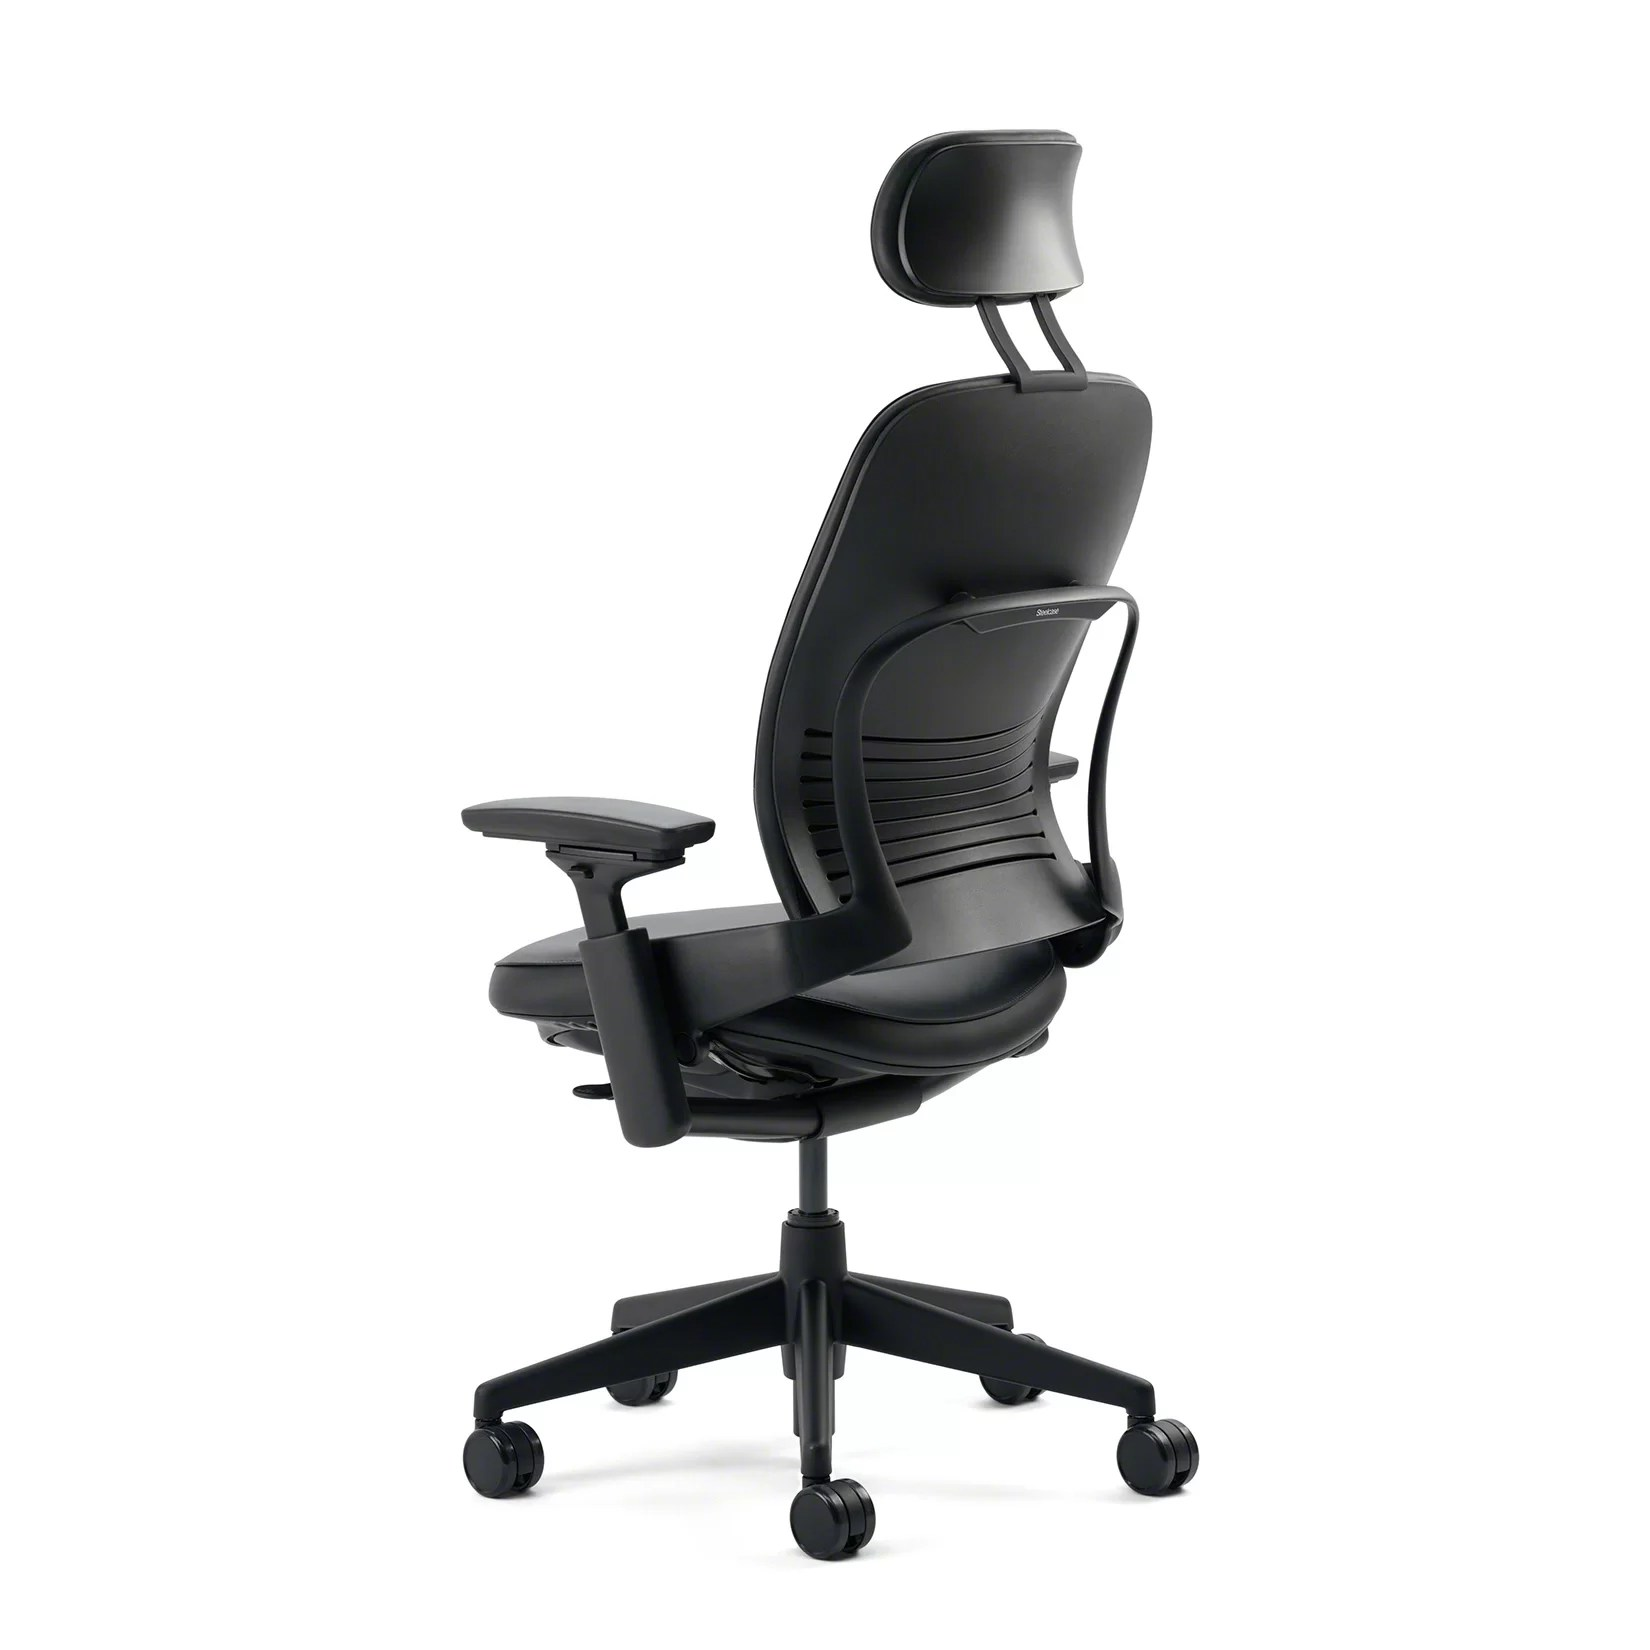 Steelcase Chair Steelcase Leap High Back Leather Desk Chair And Reviews